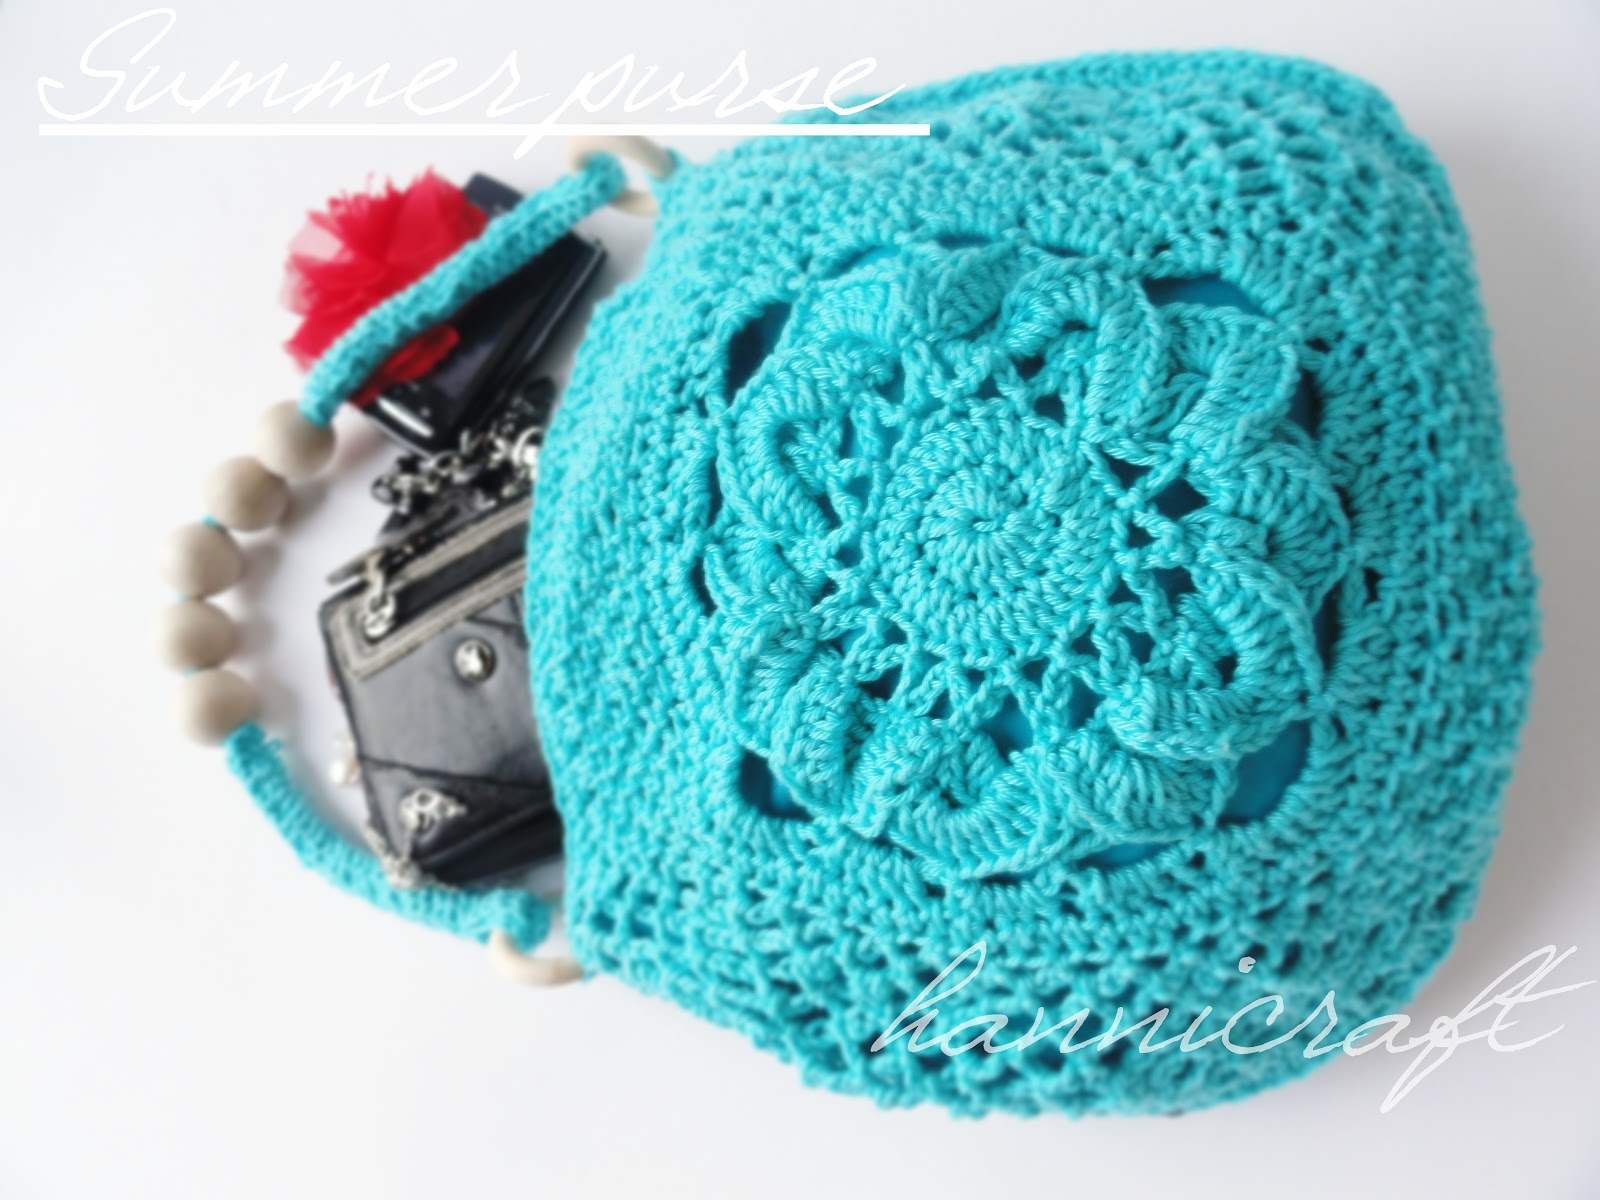 Crocheting Purses : Crochet purse for the Summer